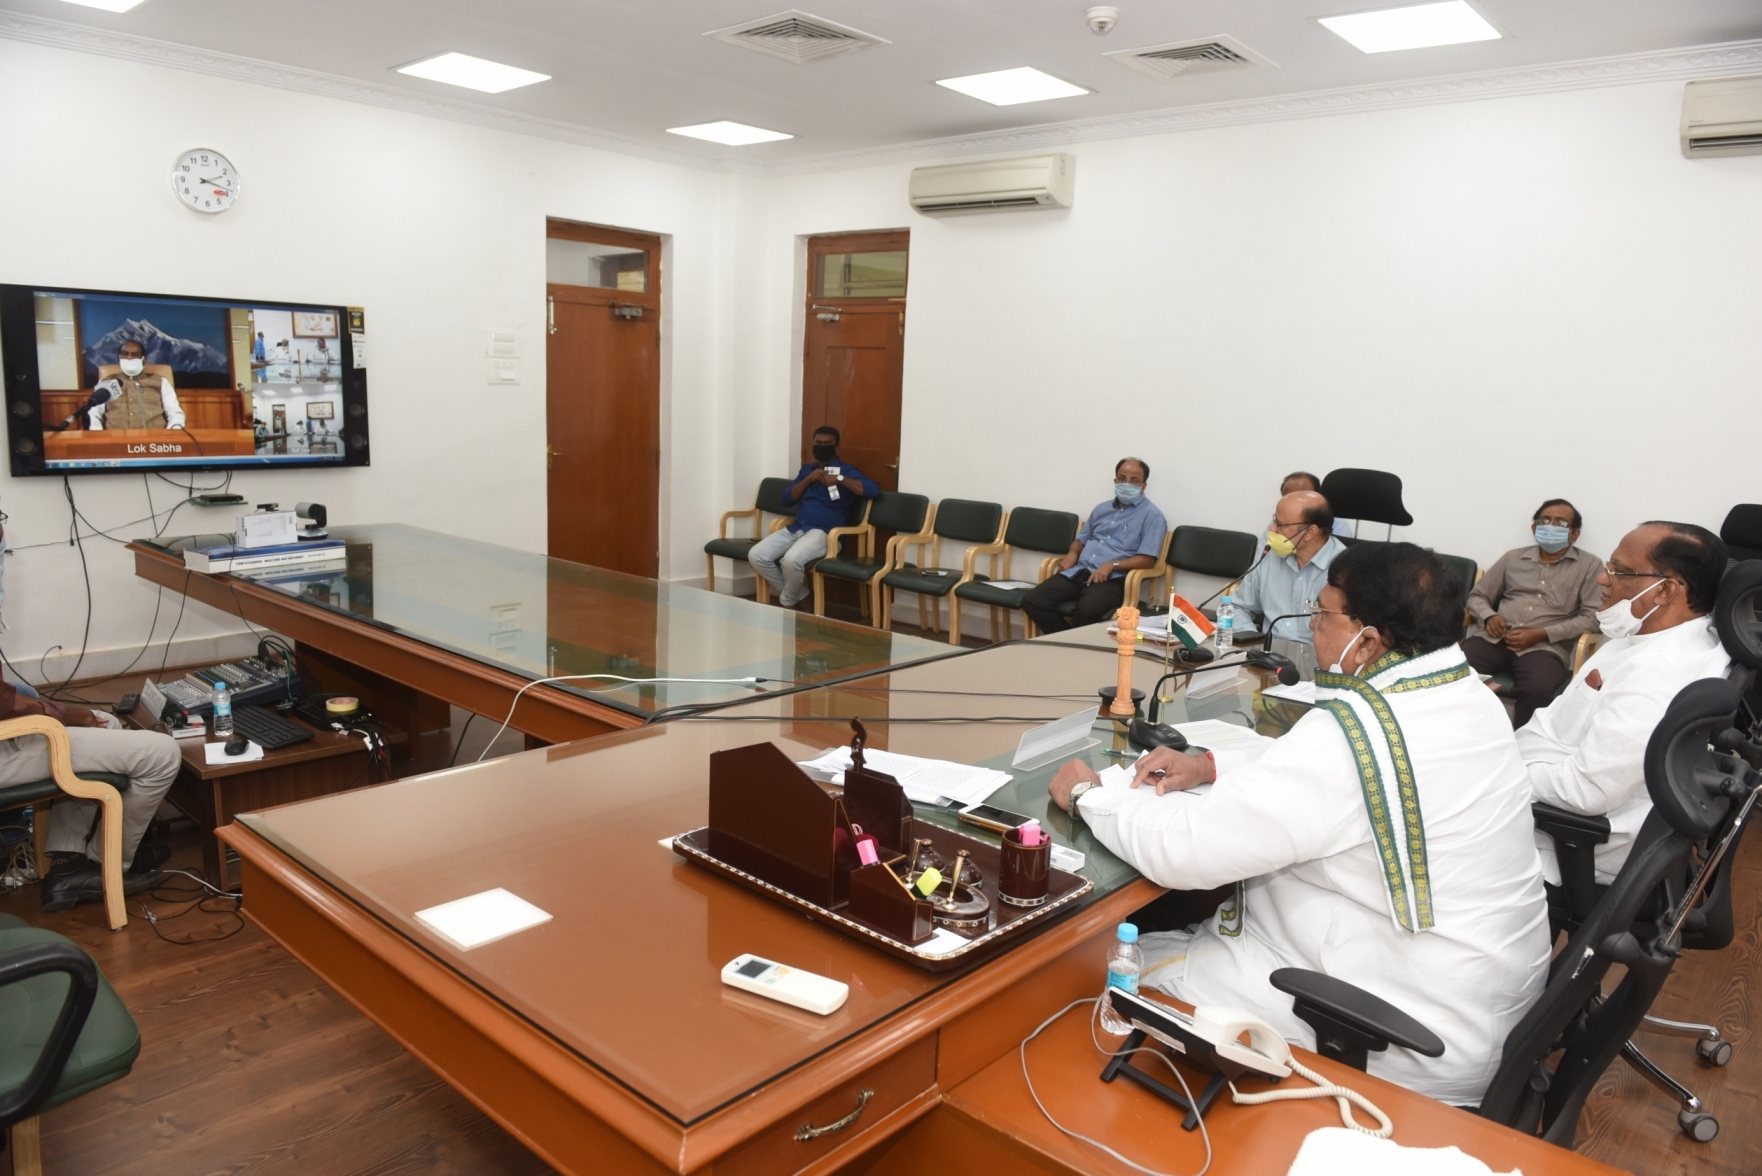 https://legislation.telanganalegislature.org.in//PreviewPage.tsl?filePath=basePath&fileName=Gallery/Presiding Officers of Telangana Legislature Video Conference with Honourable Speaker, Lok Sabha on 21.04.2020./7.JPG